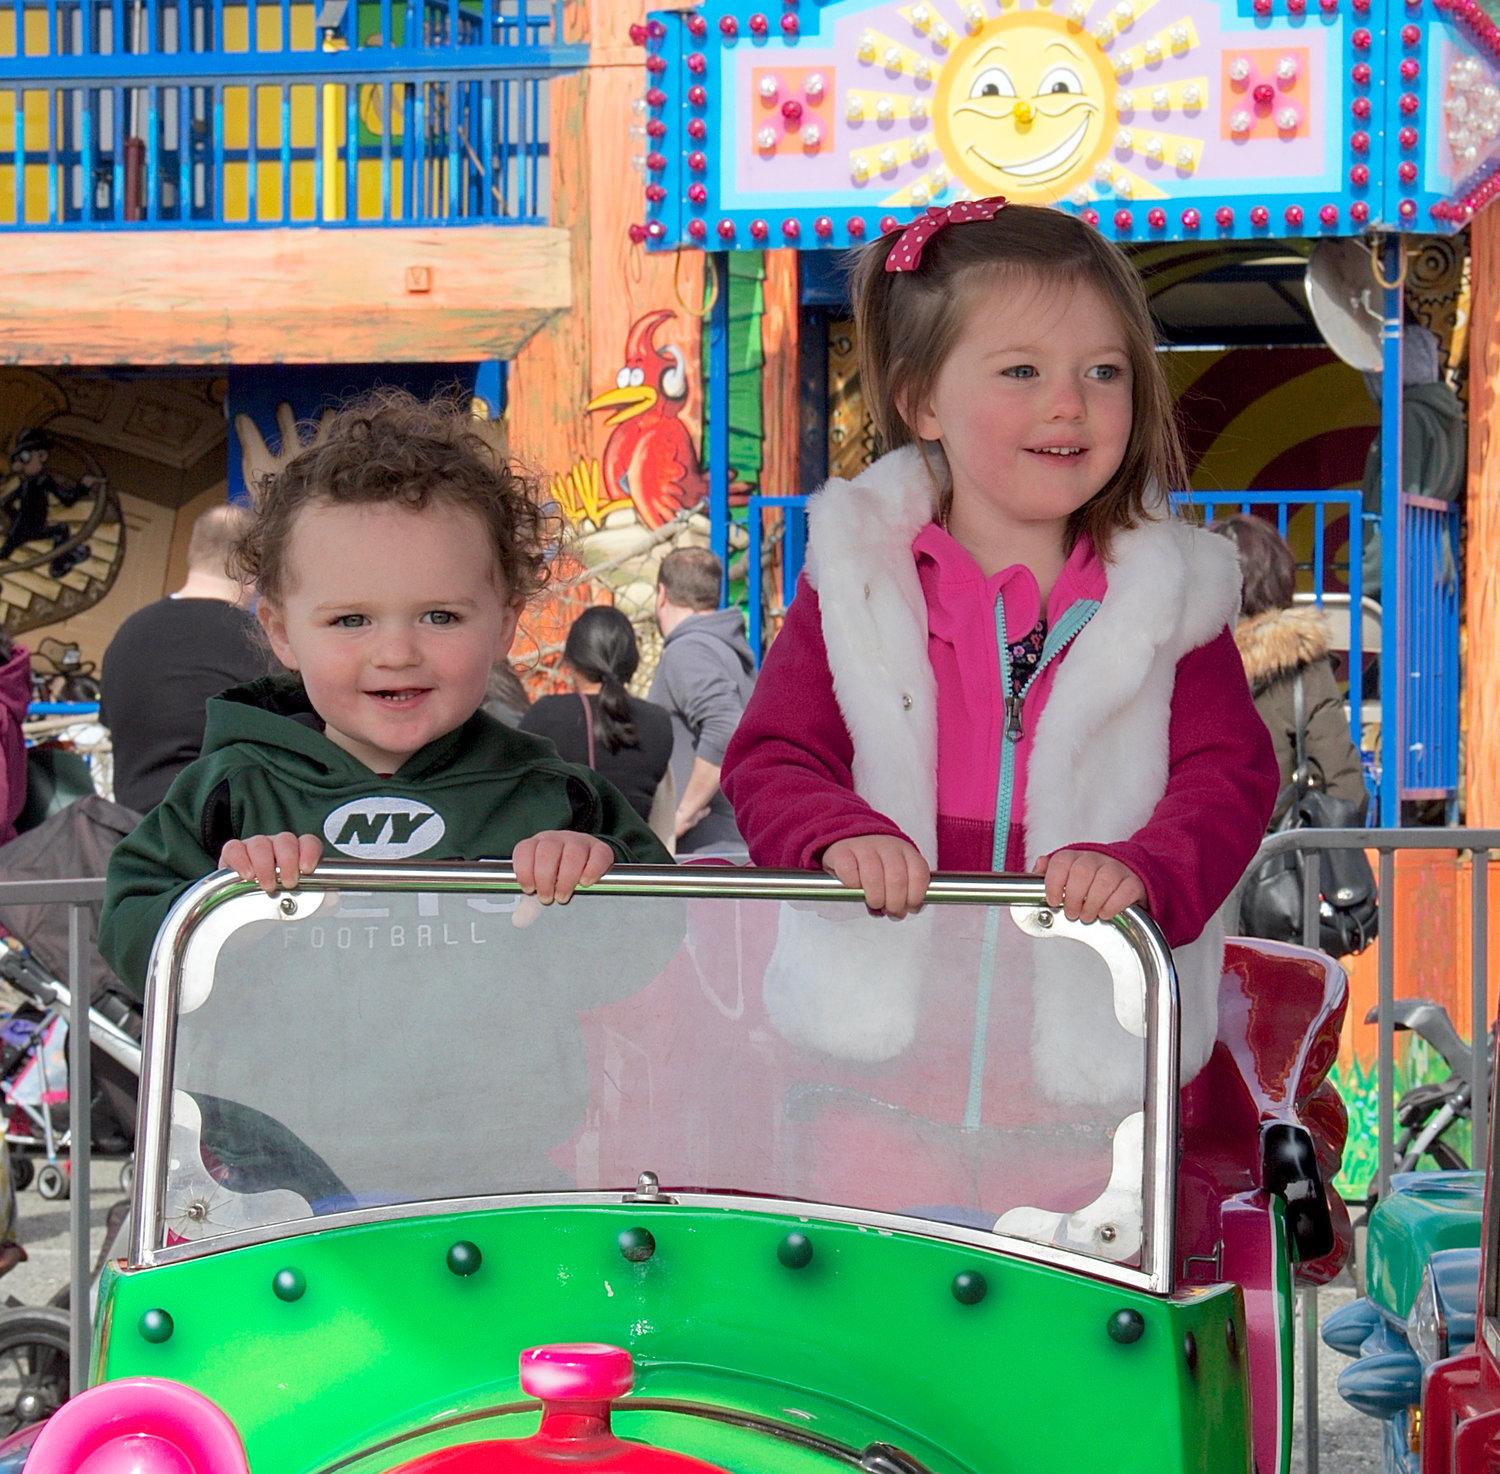 Luke Turbert, 2, and sister Charlotte, 4, took a ride together.